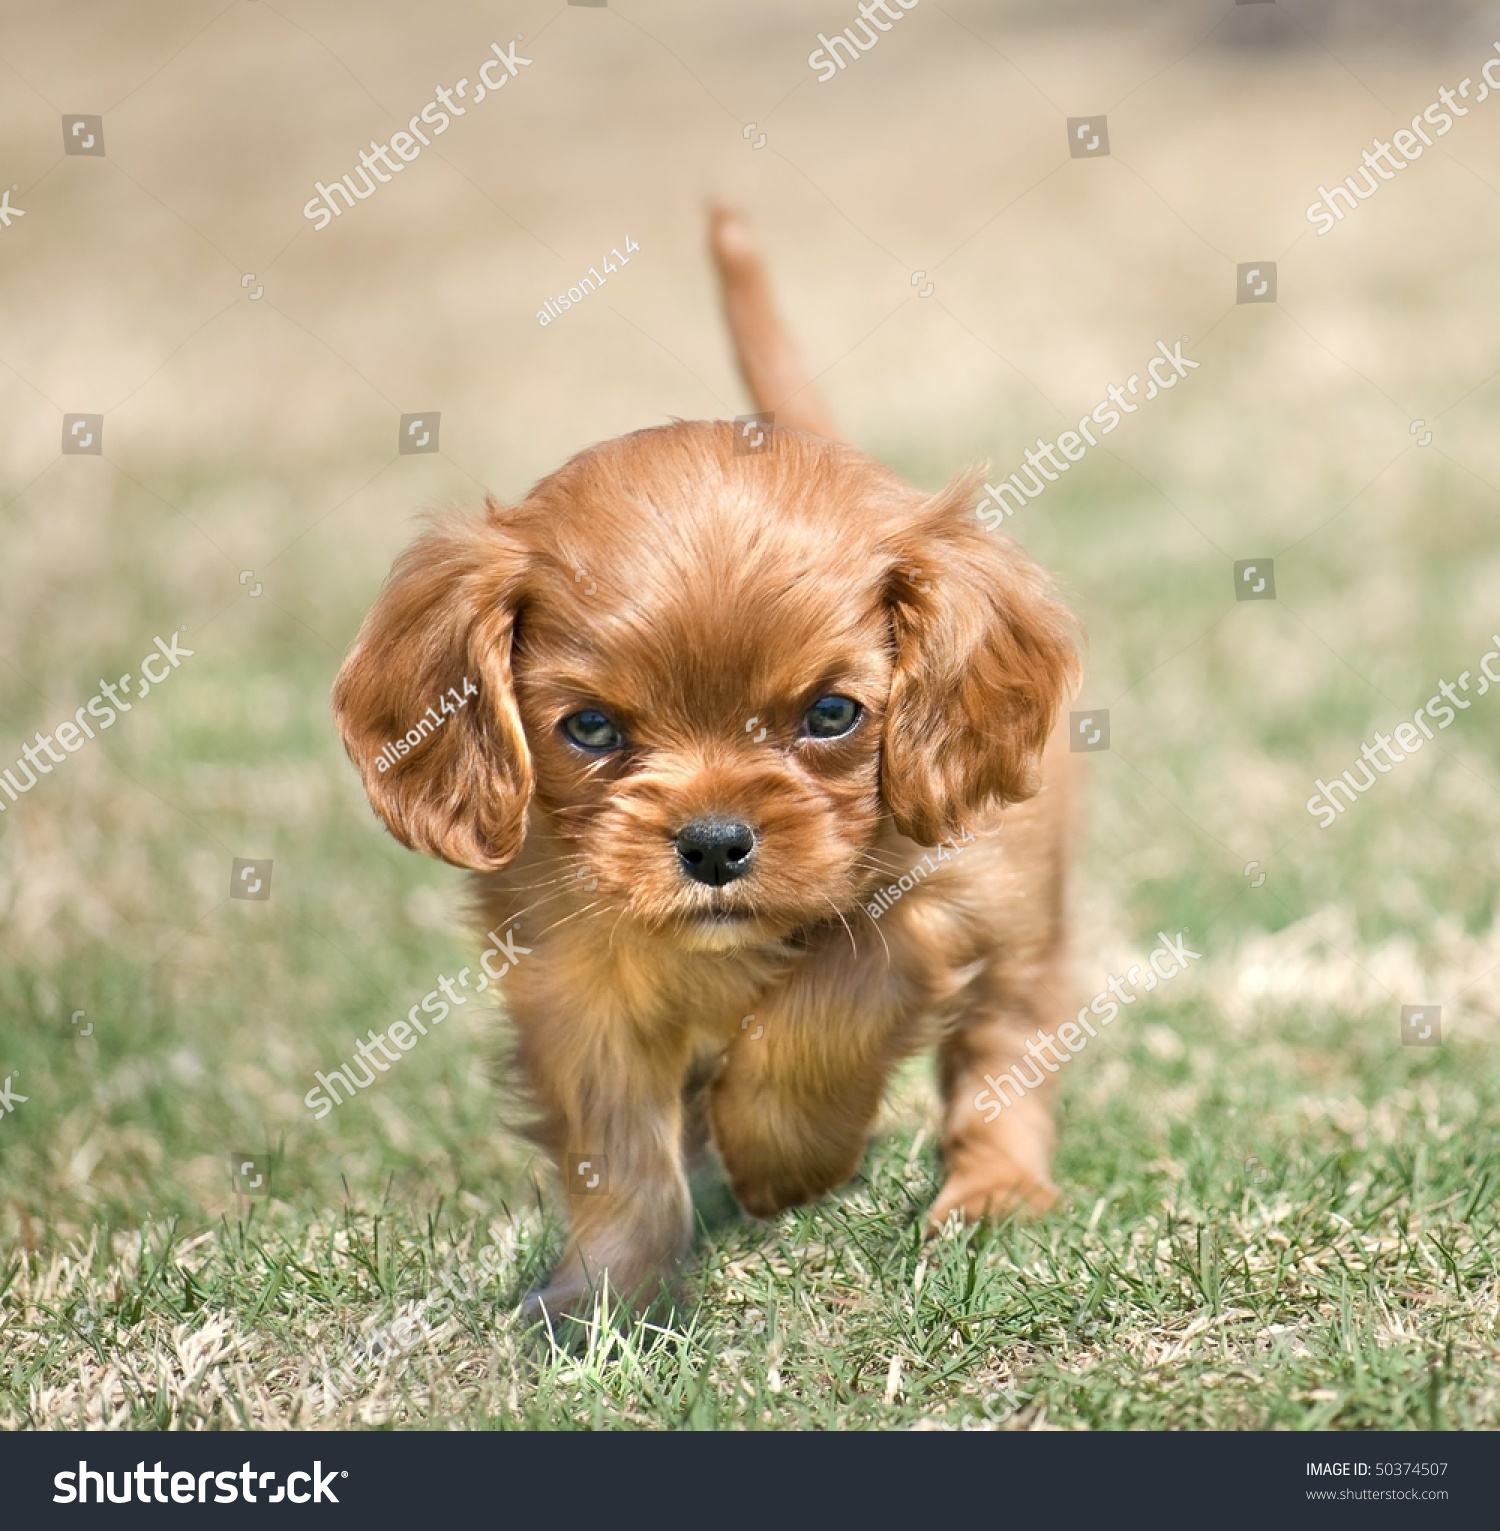 stock-photo-angry-puppy-cavalier-king-ch